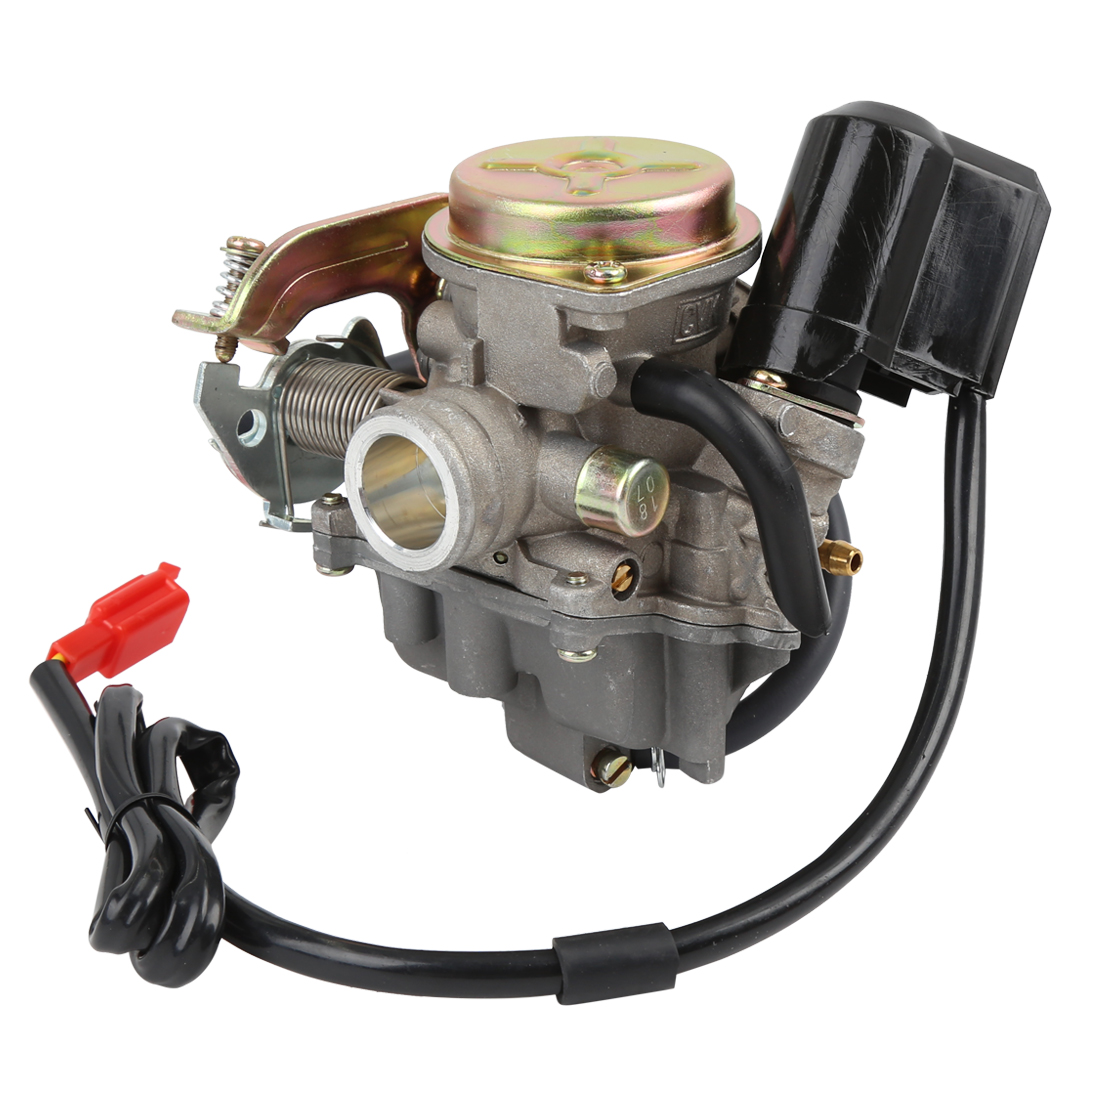 Motorcycle Scooter Universal GY6 50CC Carb Part Generator Carburetor